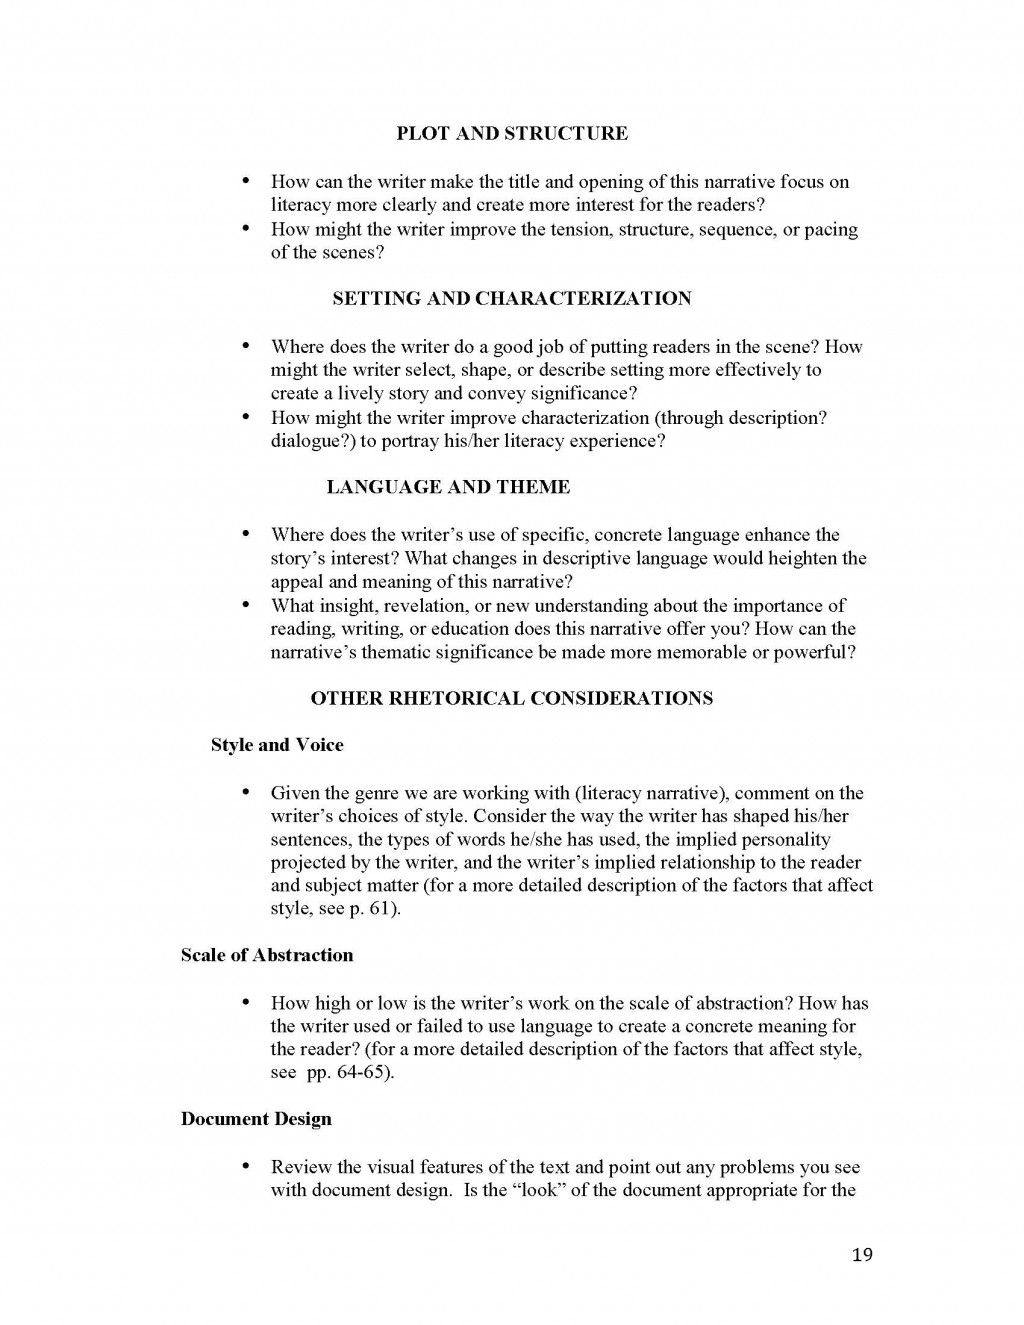 017 Essay Example Narrative Structure Unit 1 Literacy Instructor Copy Page 19 Surprising Pdf Examples College Personal High School Large